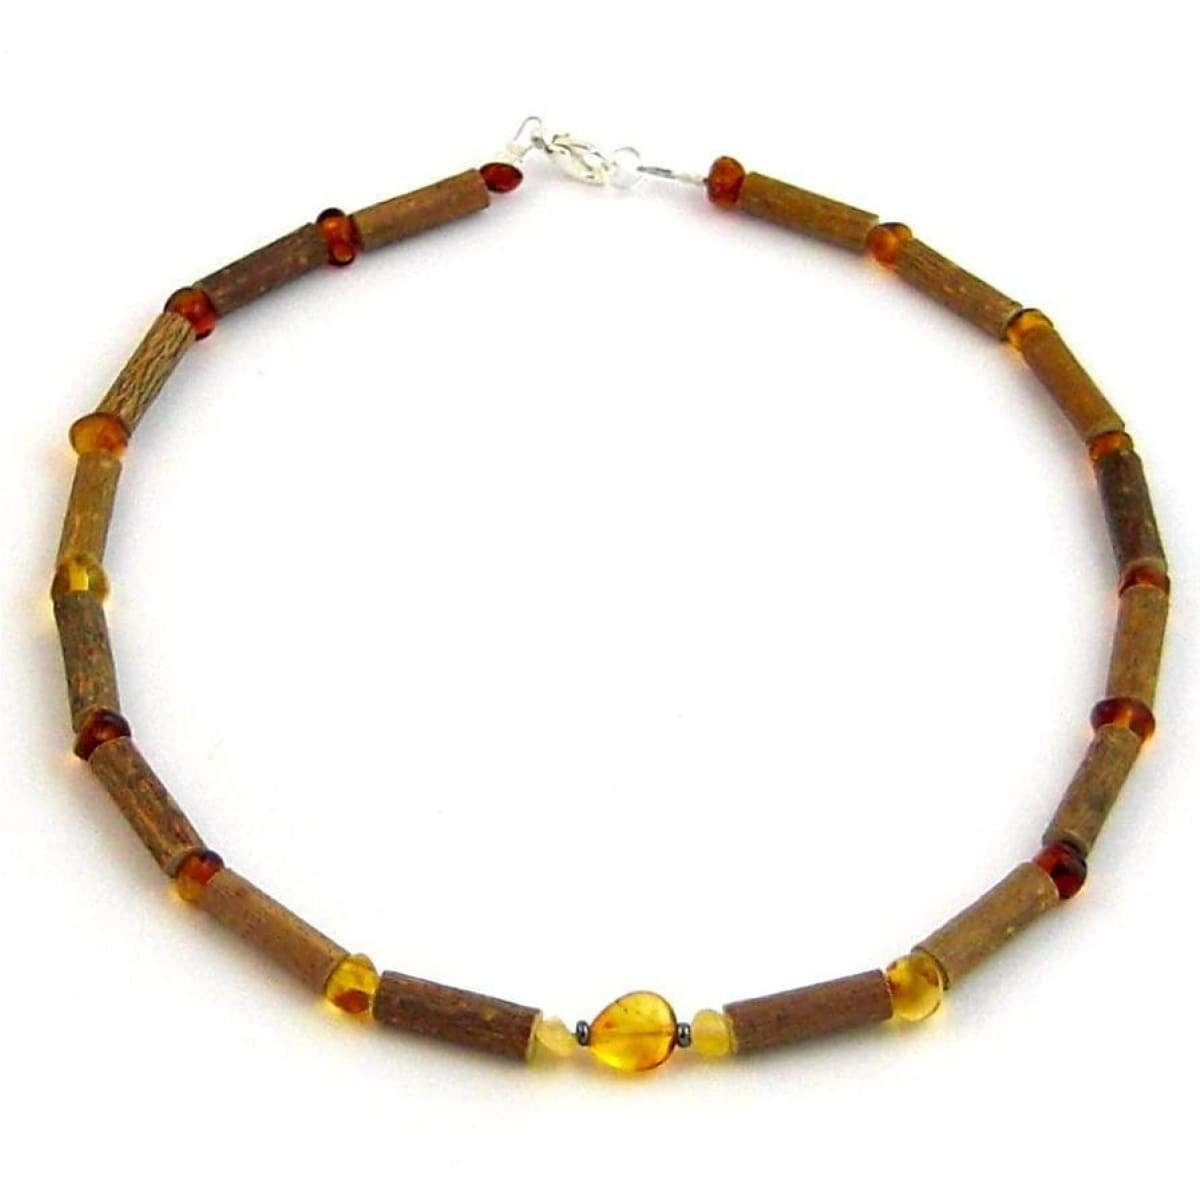 Hazel-Amber Honey Amber - 11 Necklace - Lobster Claw Clasp - Hazelwood & Baltic Amber Jewelry